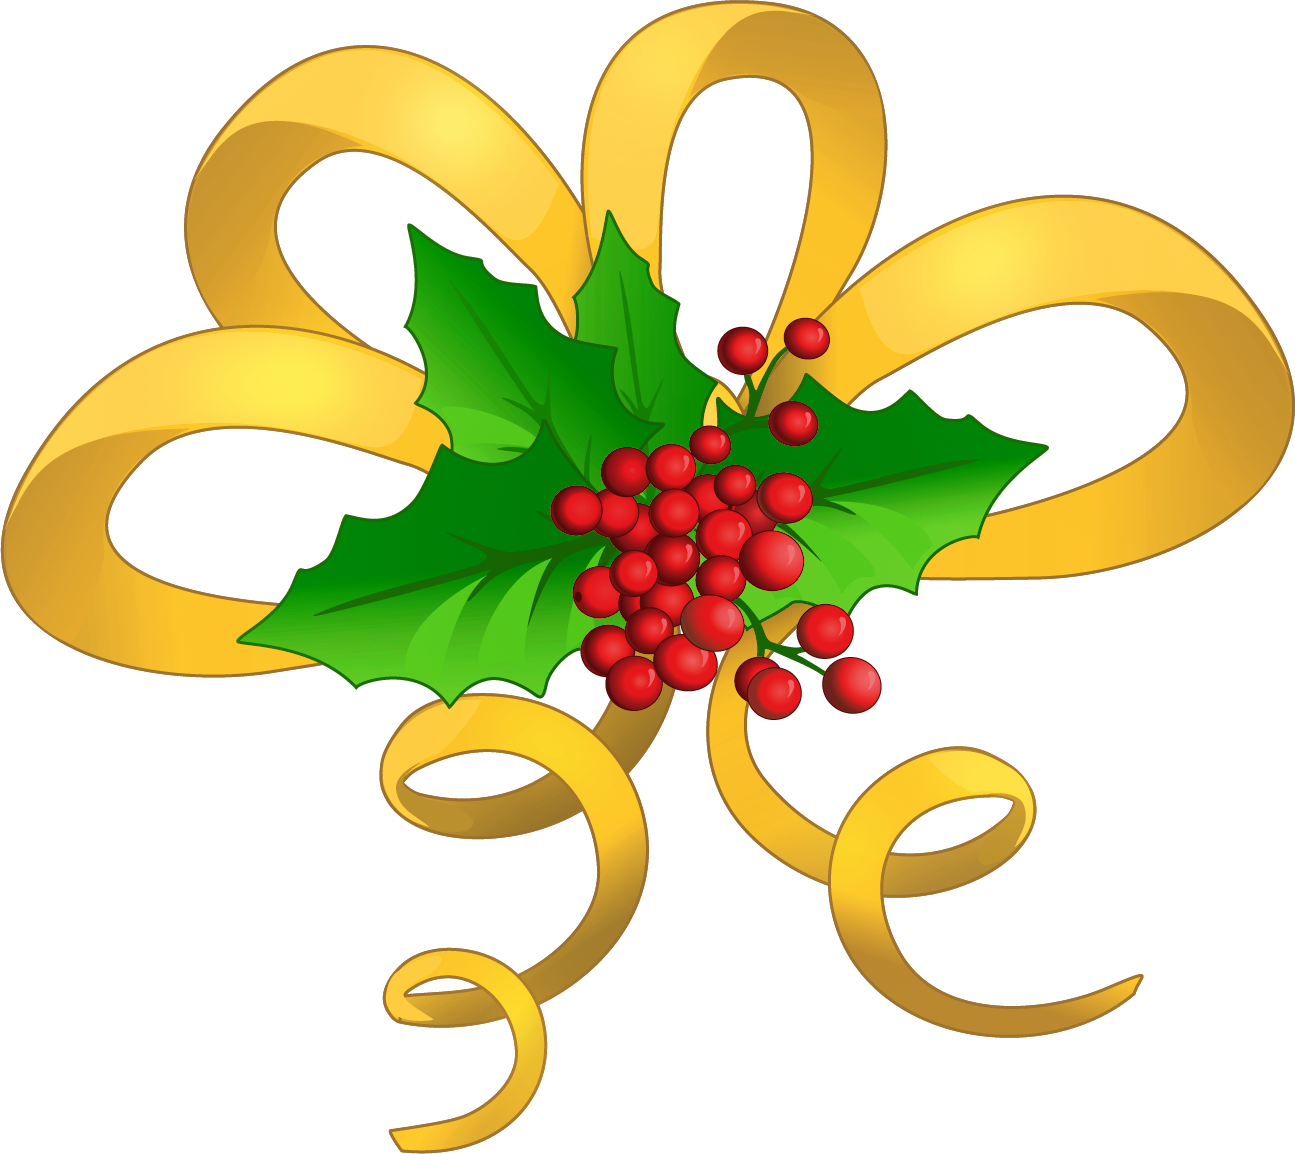 banner royalty free stock Christmas yellow bow with. Archery clipart free.